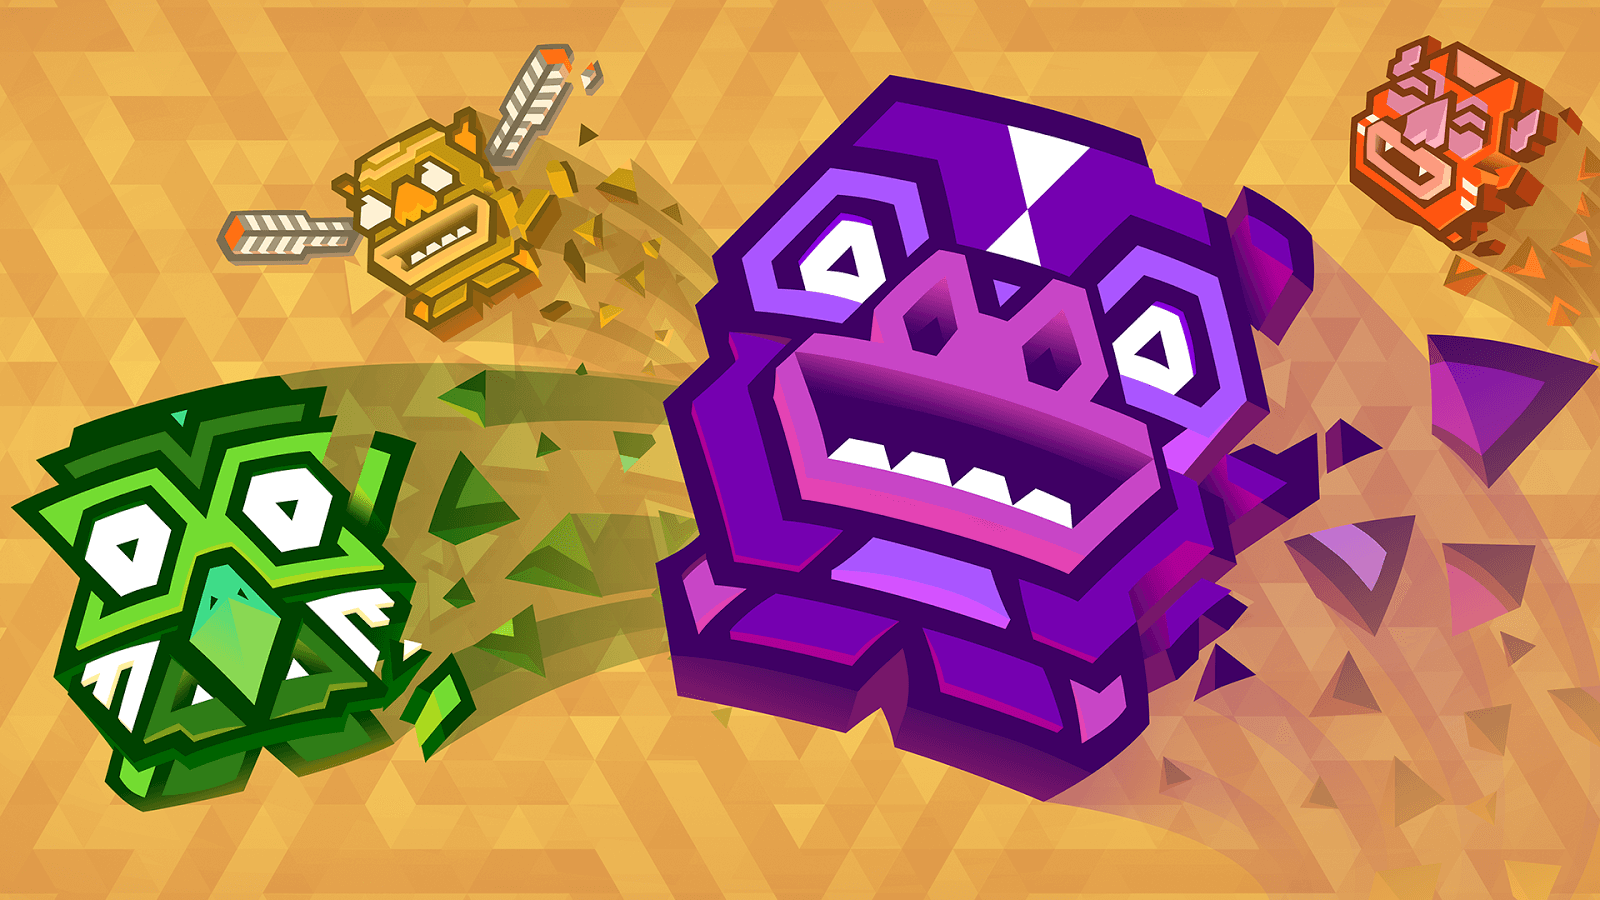 New DLC Update for Kalimba Adds 20 New Levels